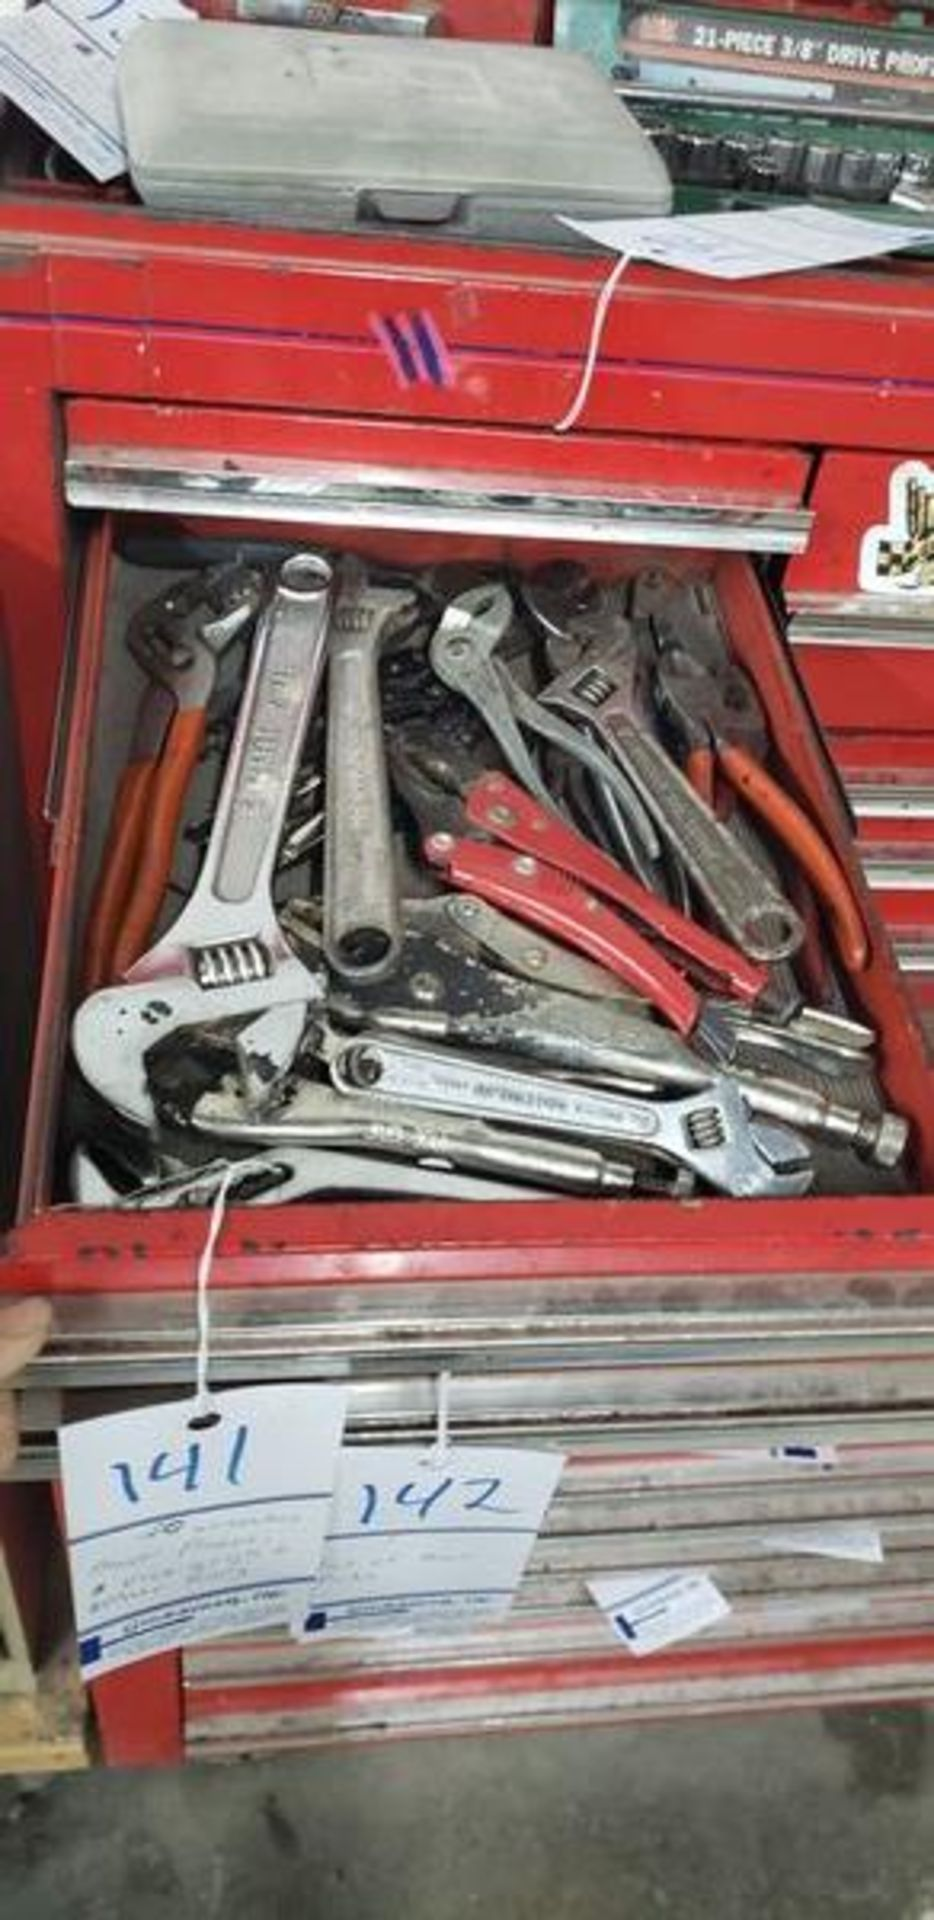 ASSORTED PLIERS, WRENCHES, VICE GRIPS AND OTHER HAND TOOLS